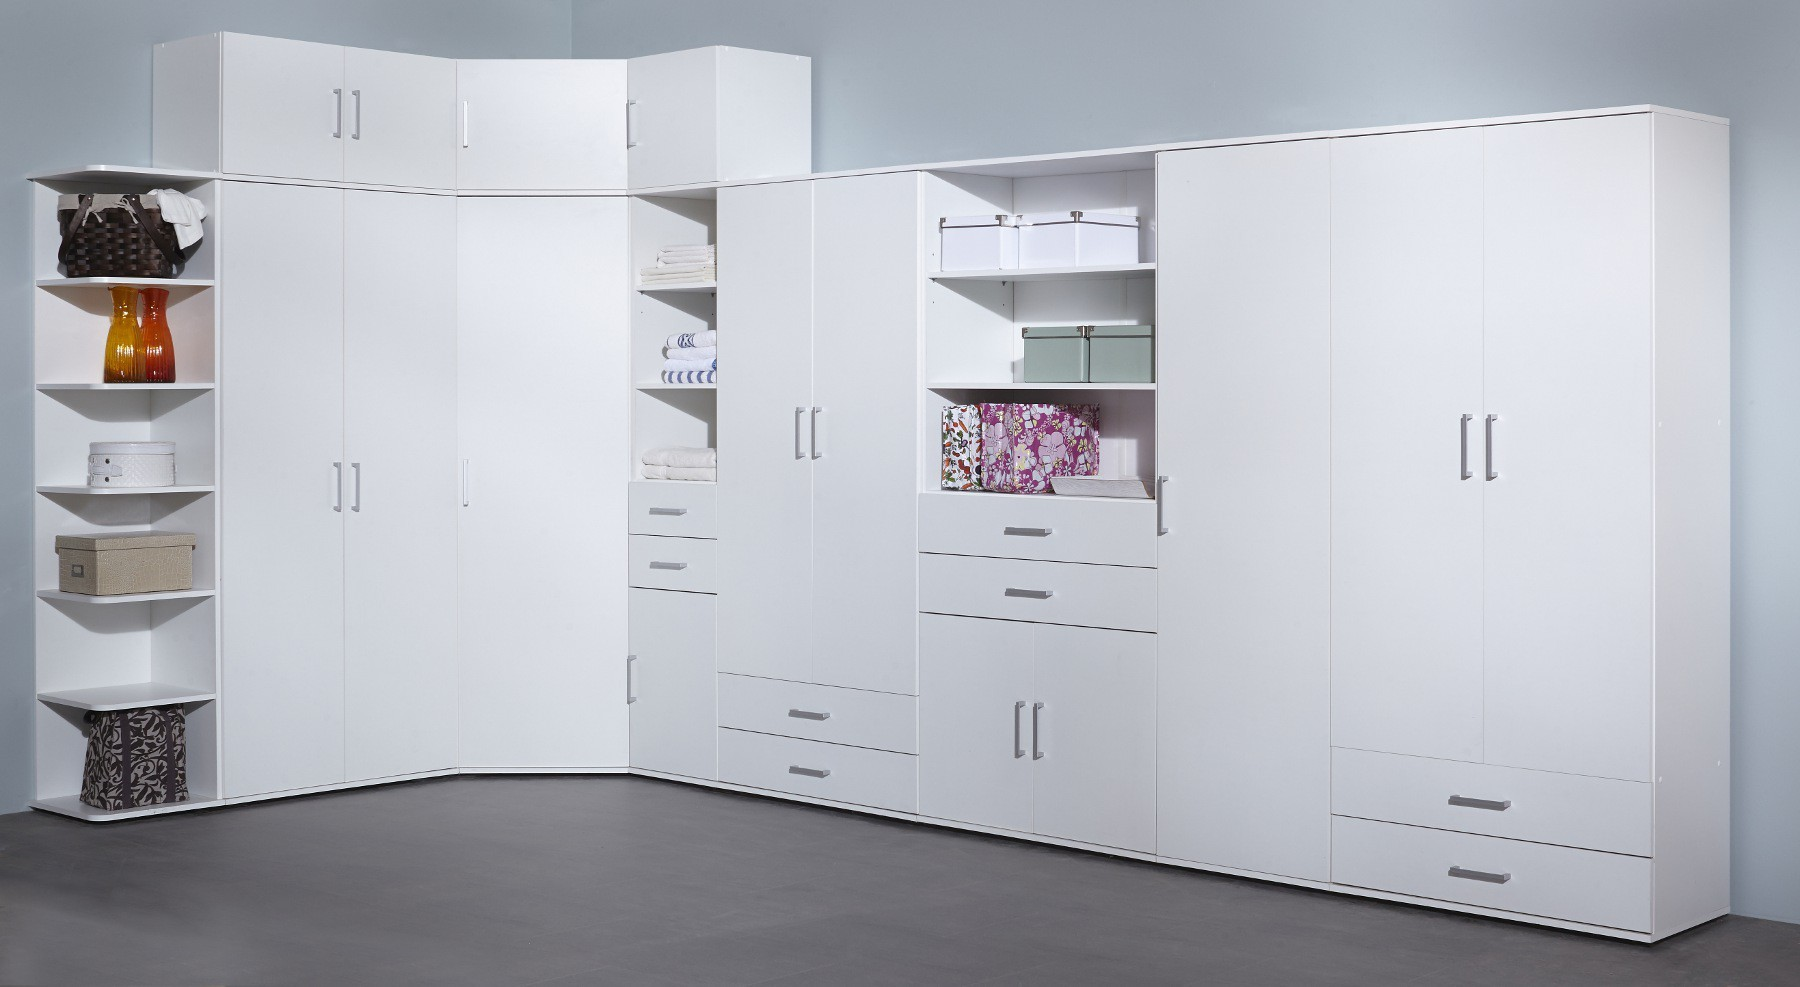 aufbewahrungsschrank ronny mehrzweckschrank hochschrank 1 t r 40 cm breit weiss ebay. Black Bedroom Furniture Sets. Home Design Ideas